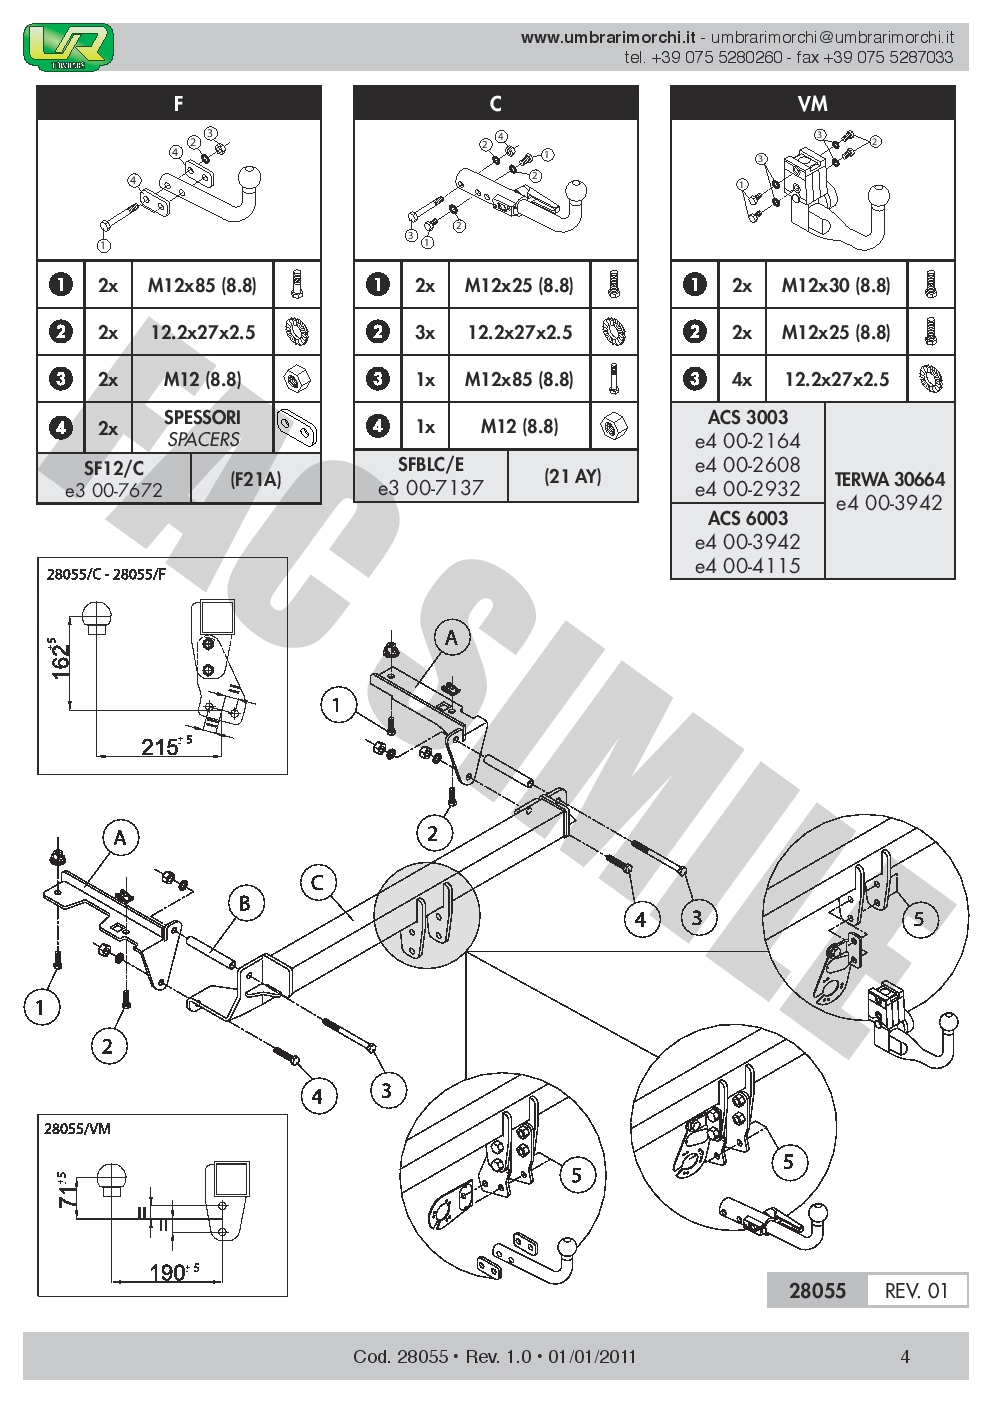 Swan Neck Towbar 7pin Wiring For Opel Vauxhall Zafira B 2005 11 Diagram